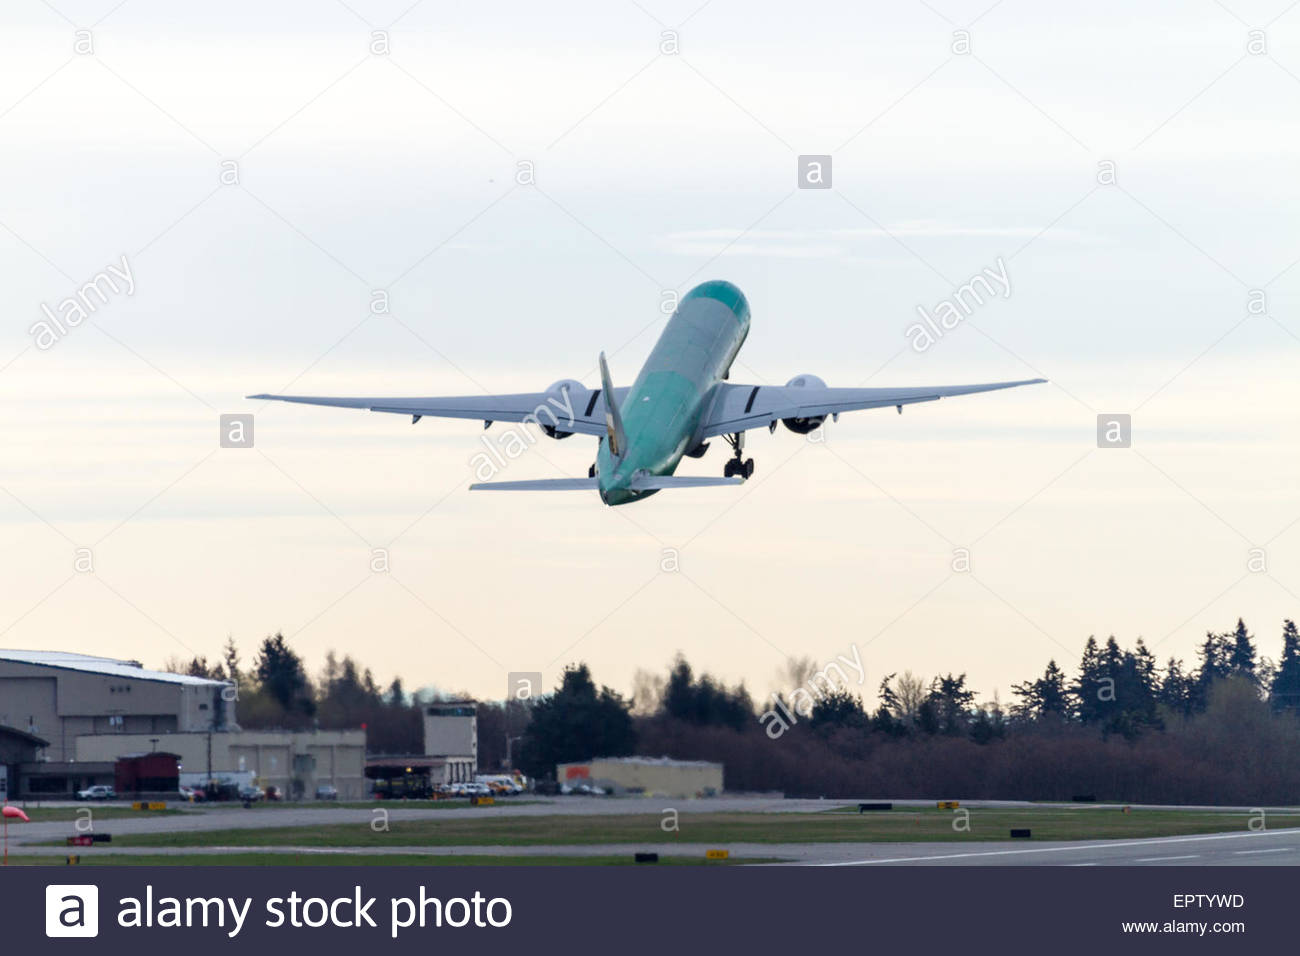 An unpainted Boeing 777 takes off from Paine Field in Everett - Washington on test flights - Stock Image